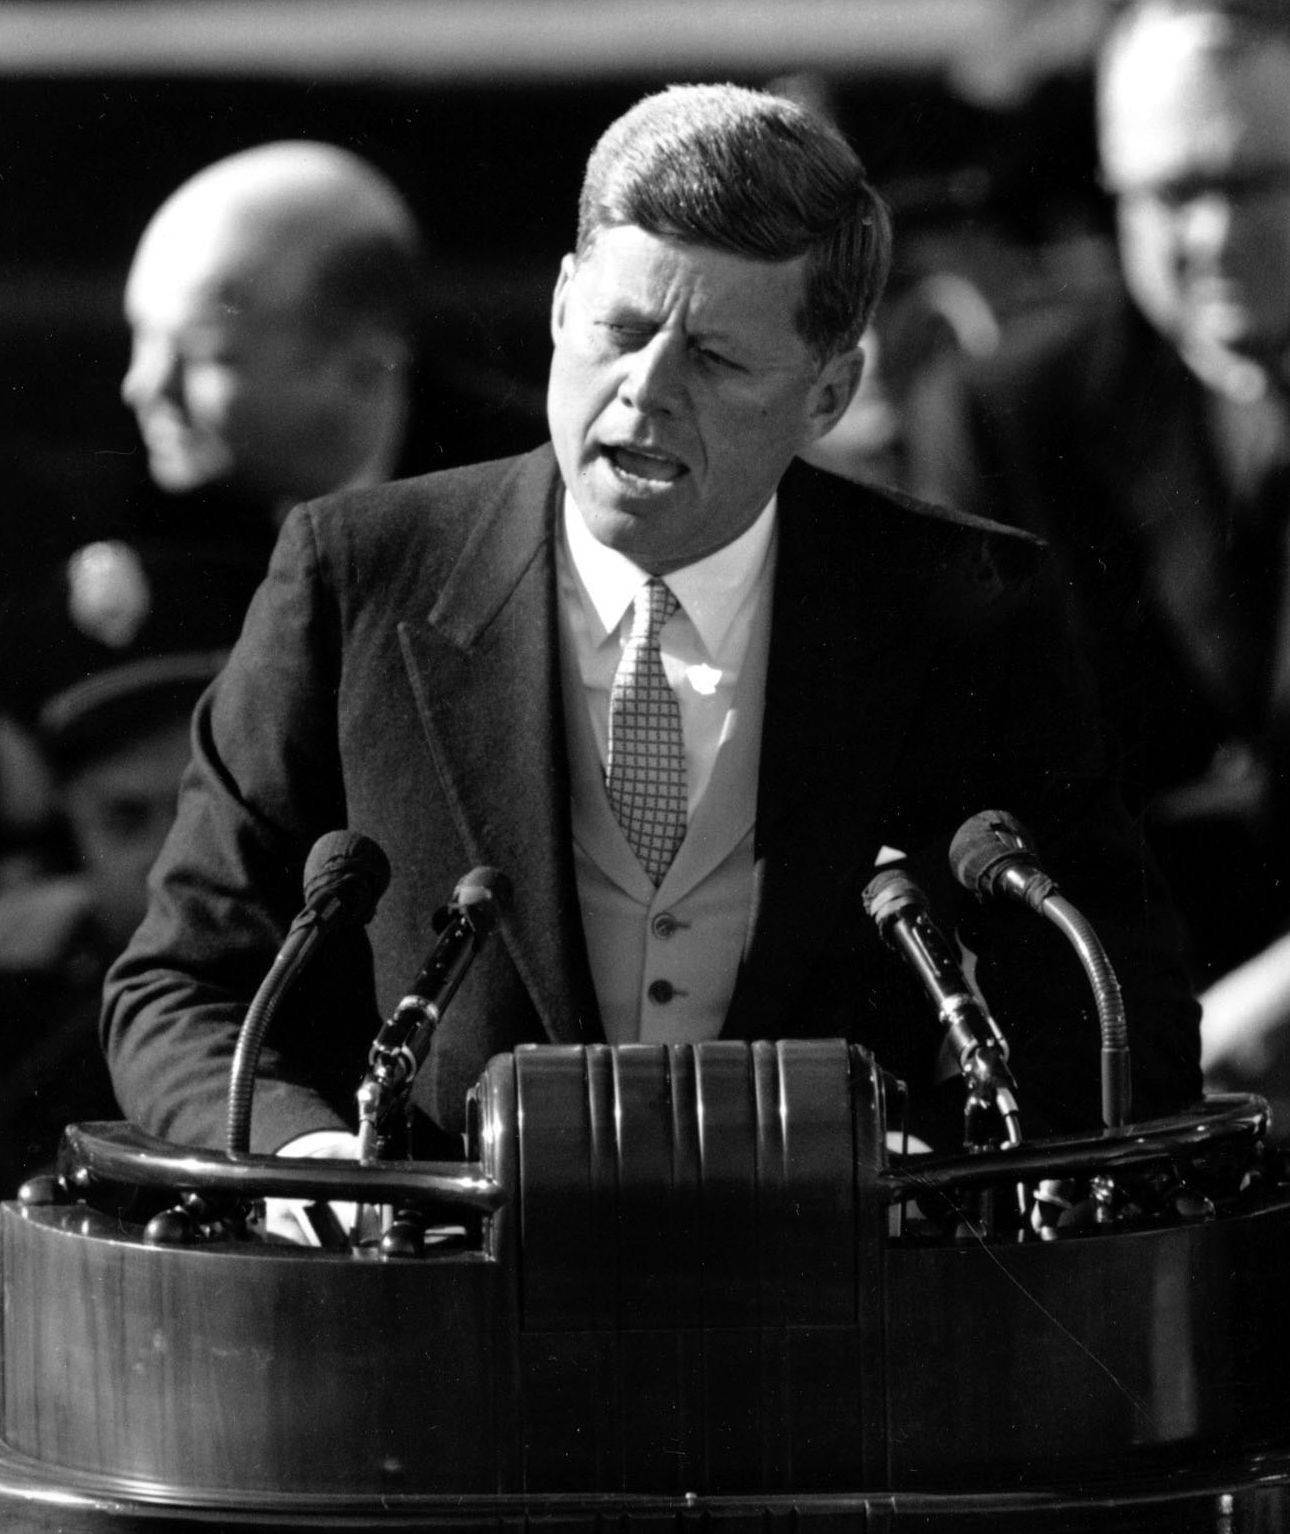 President John F. Kennedy delivers his inaugural address on Jan. 20, 1961, on Capitol Hill in Washington, D.C.